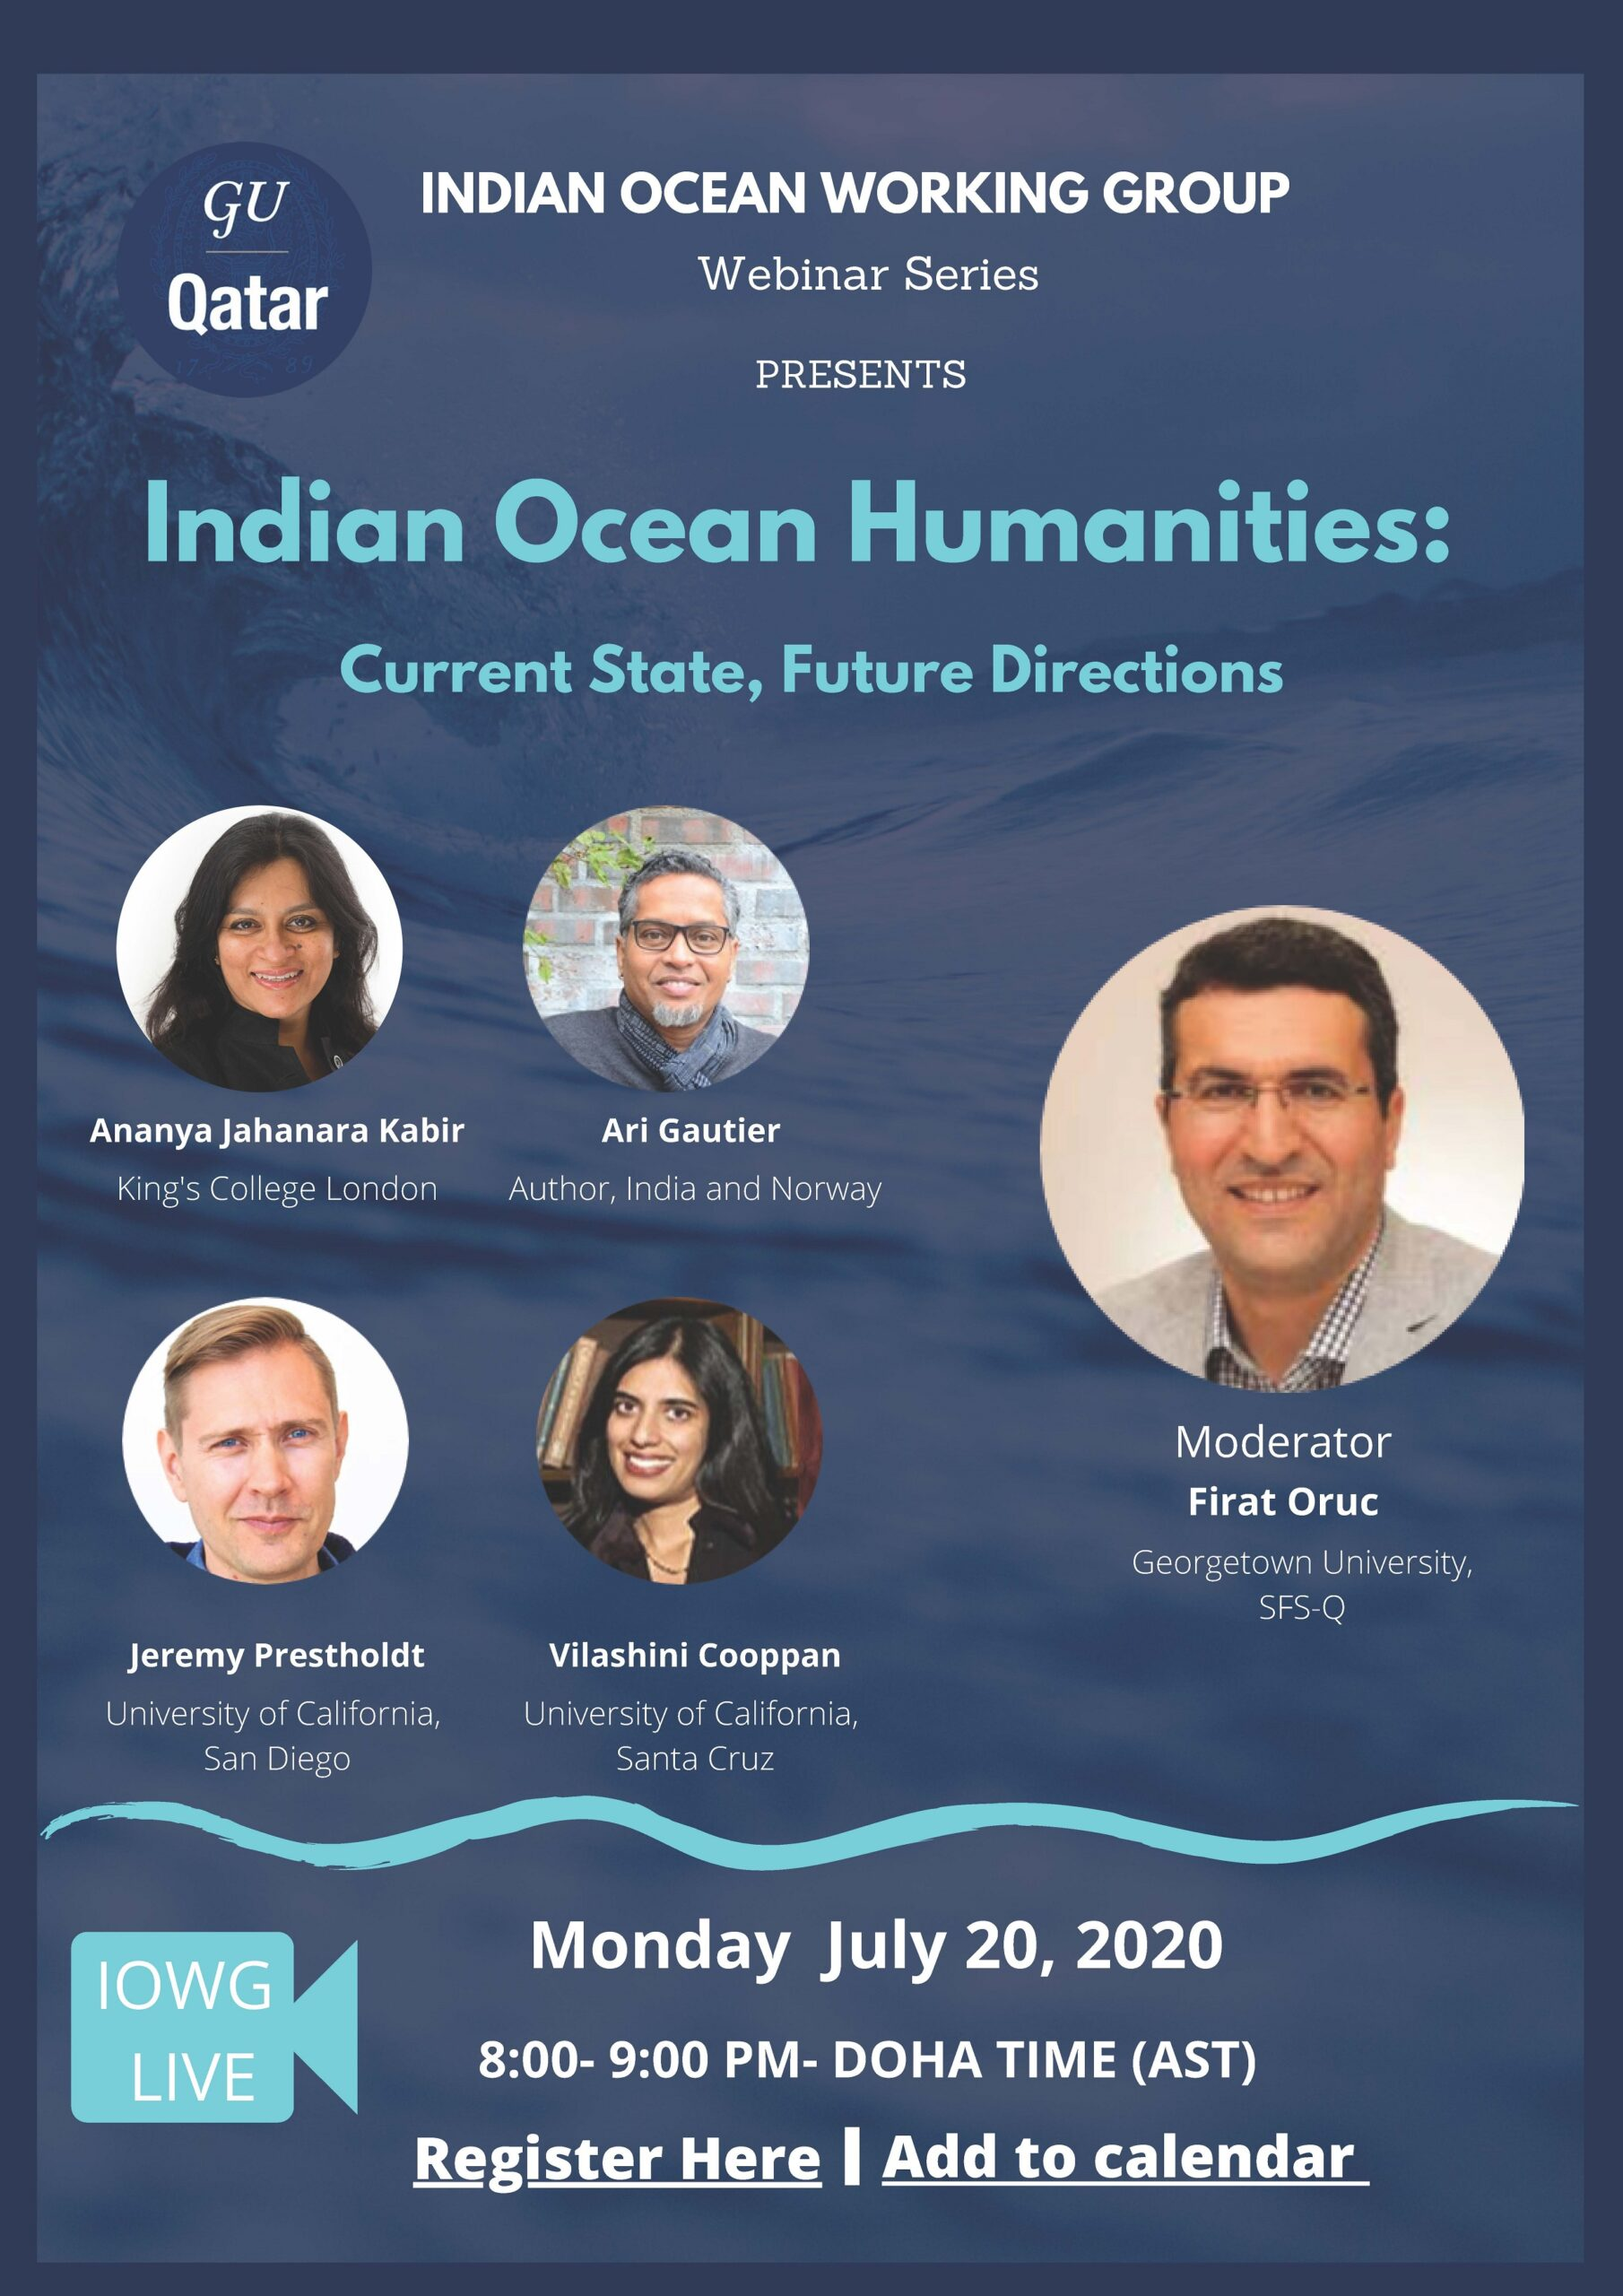 Indian Ocean Humanities: Current State, Future Directions